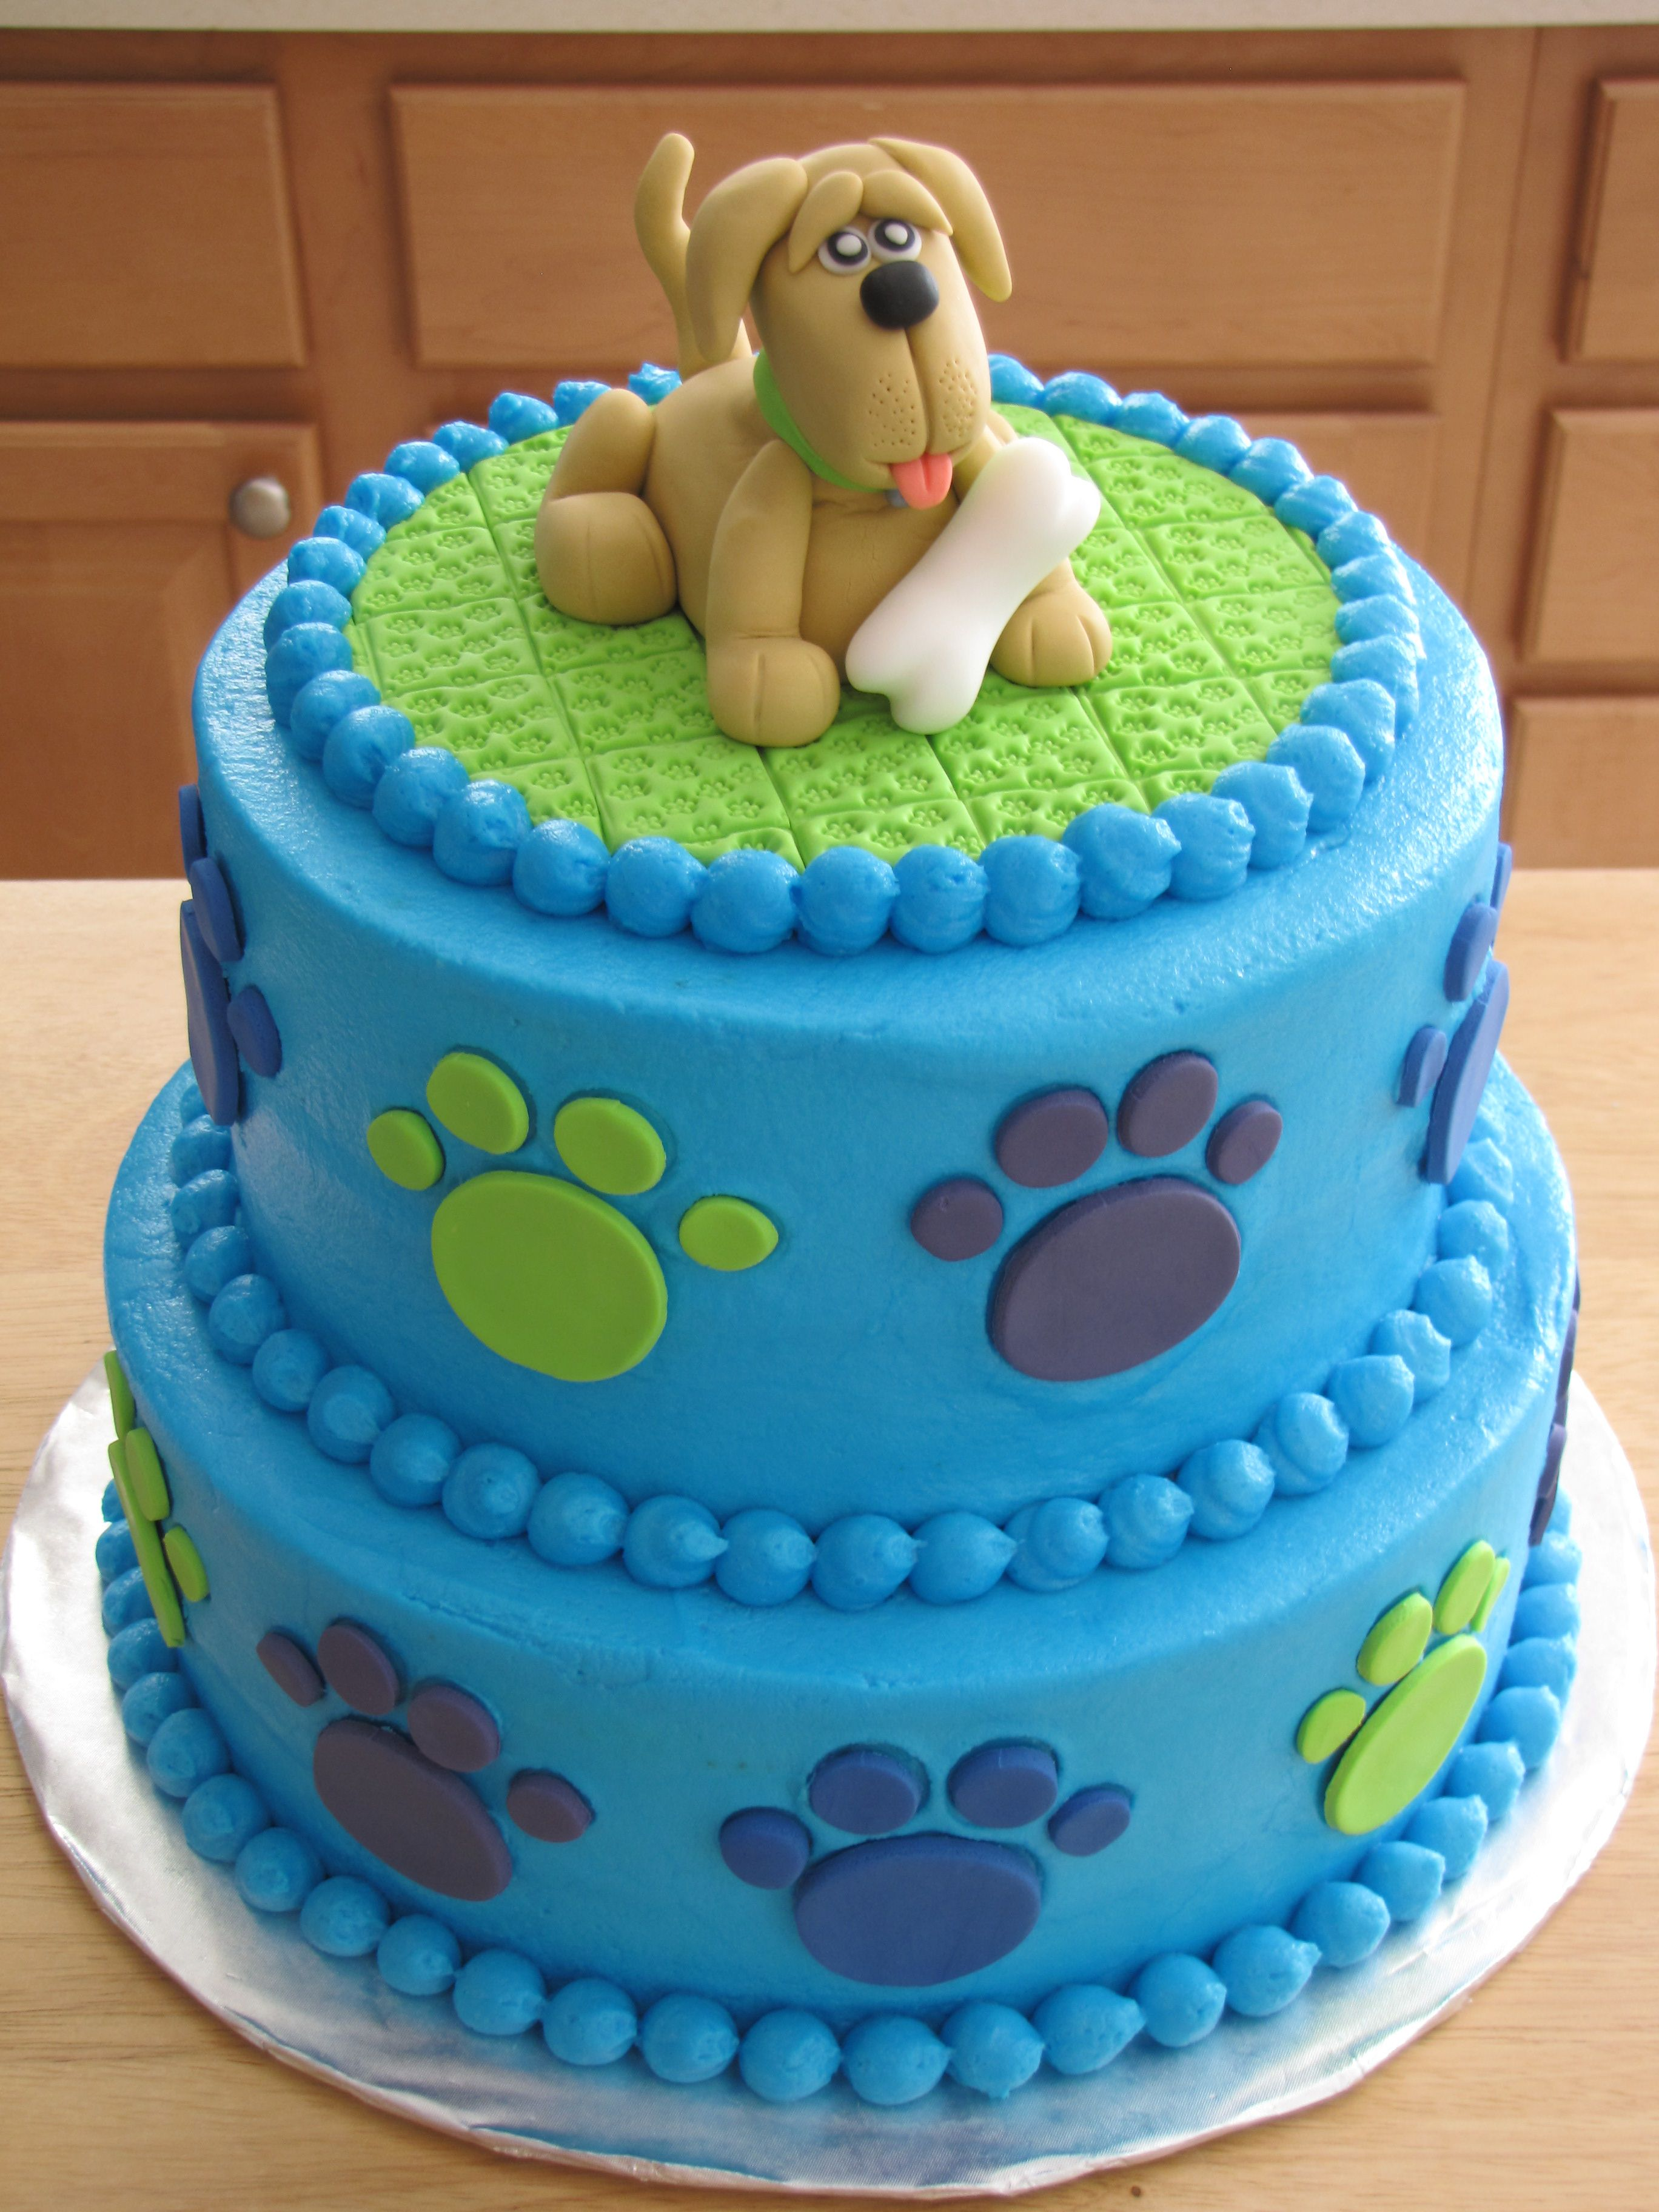 Natalie s creative cakes animal cakes - Puppy Birthday Buttercream Covered Cake With Fondant Puppy Topper And Paws